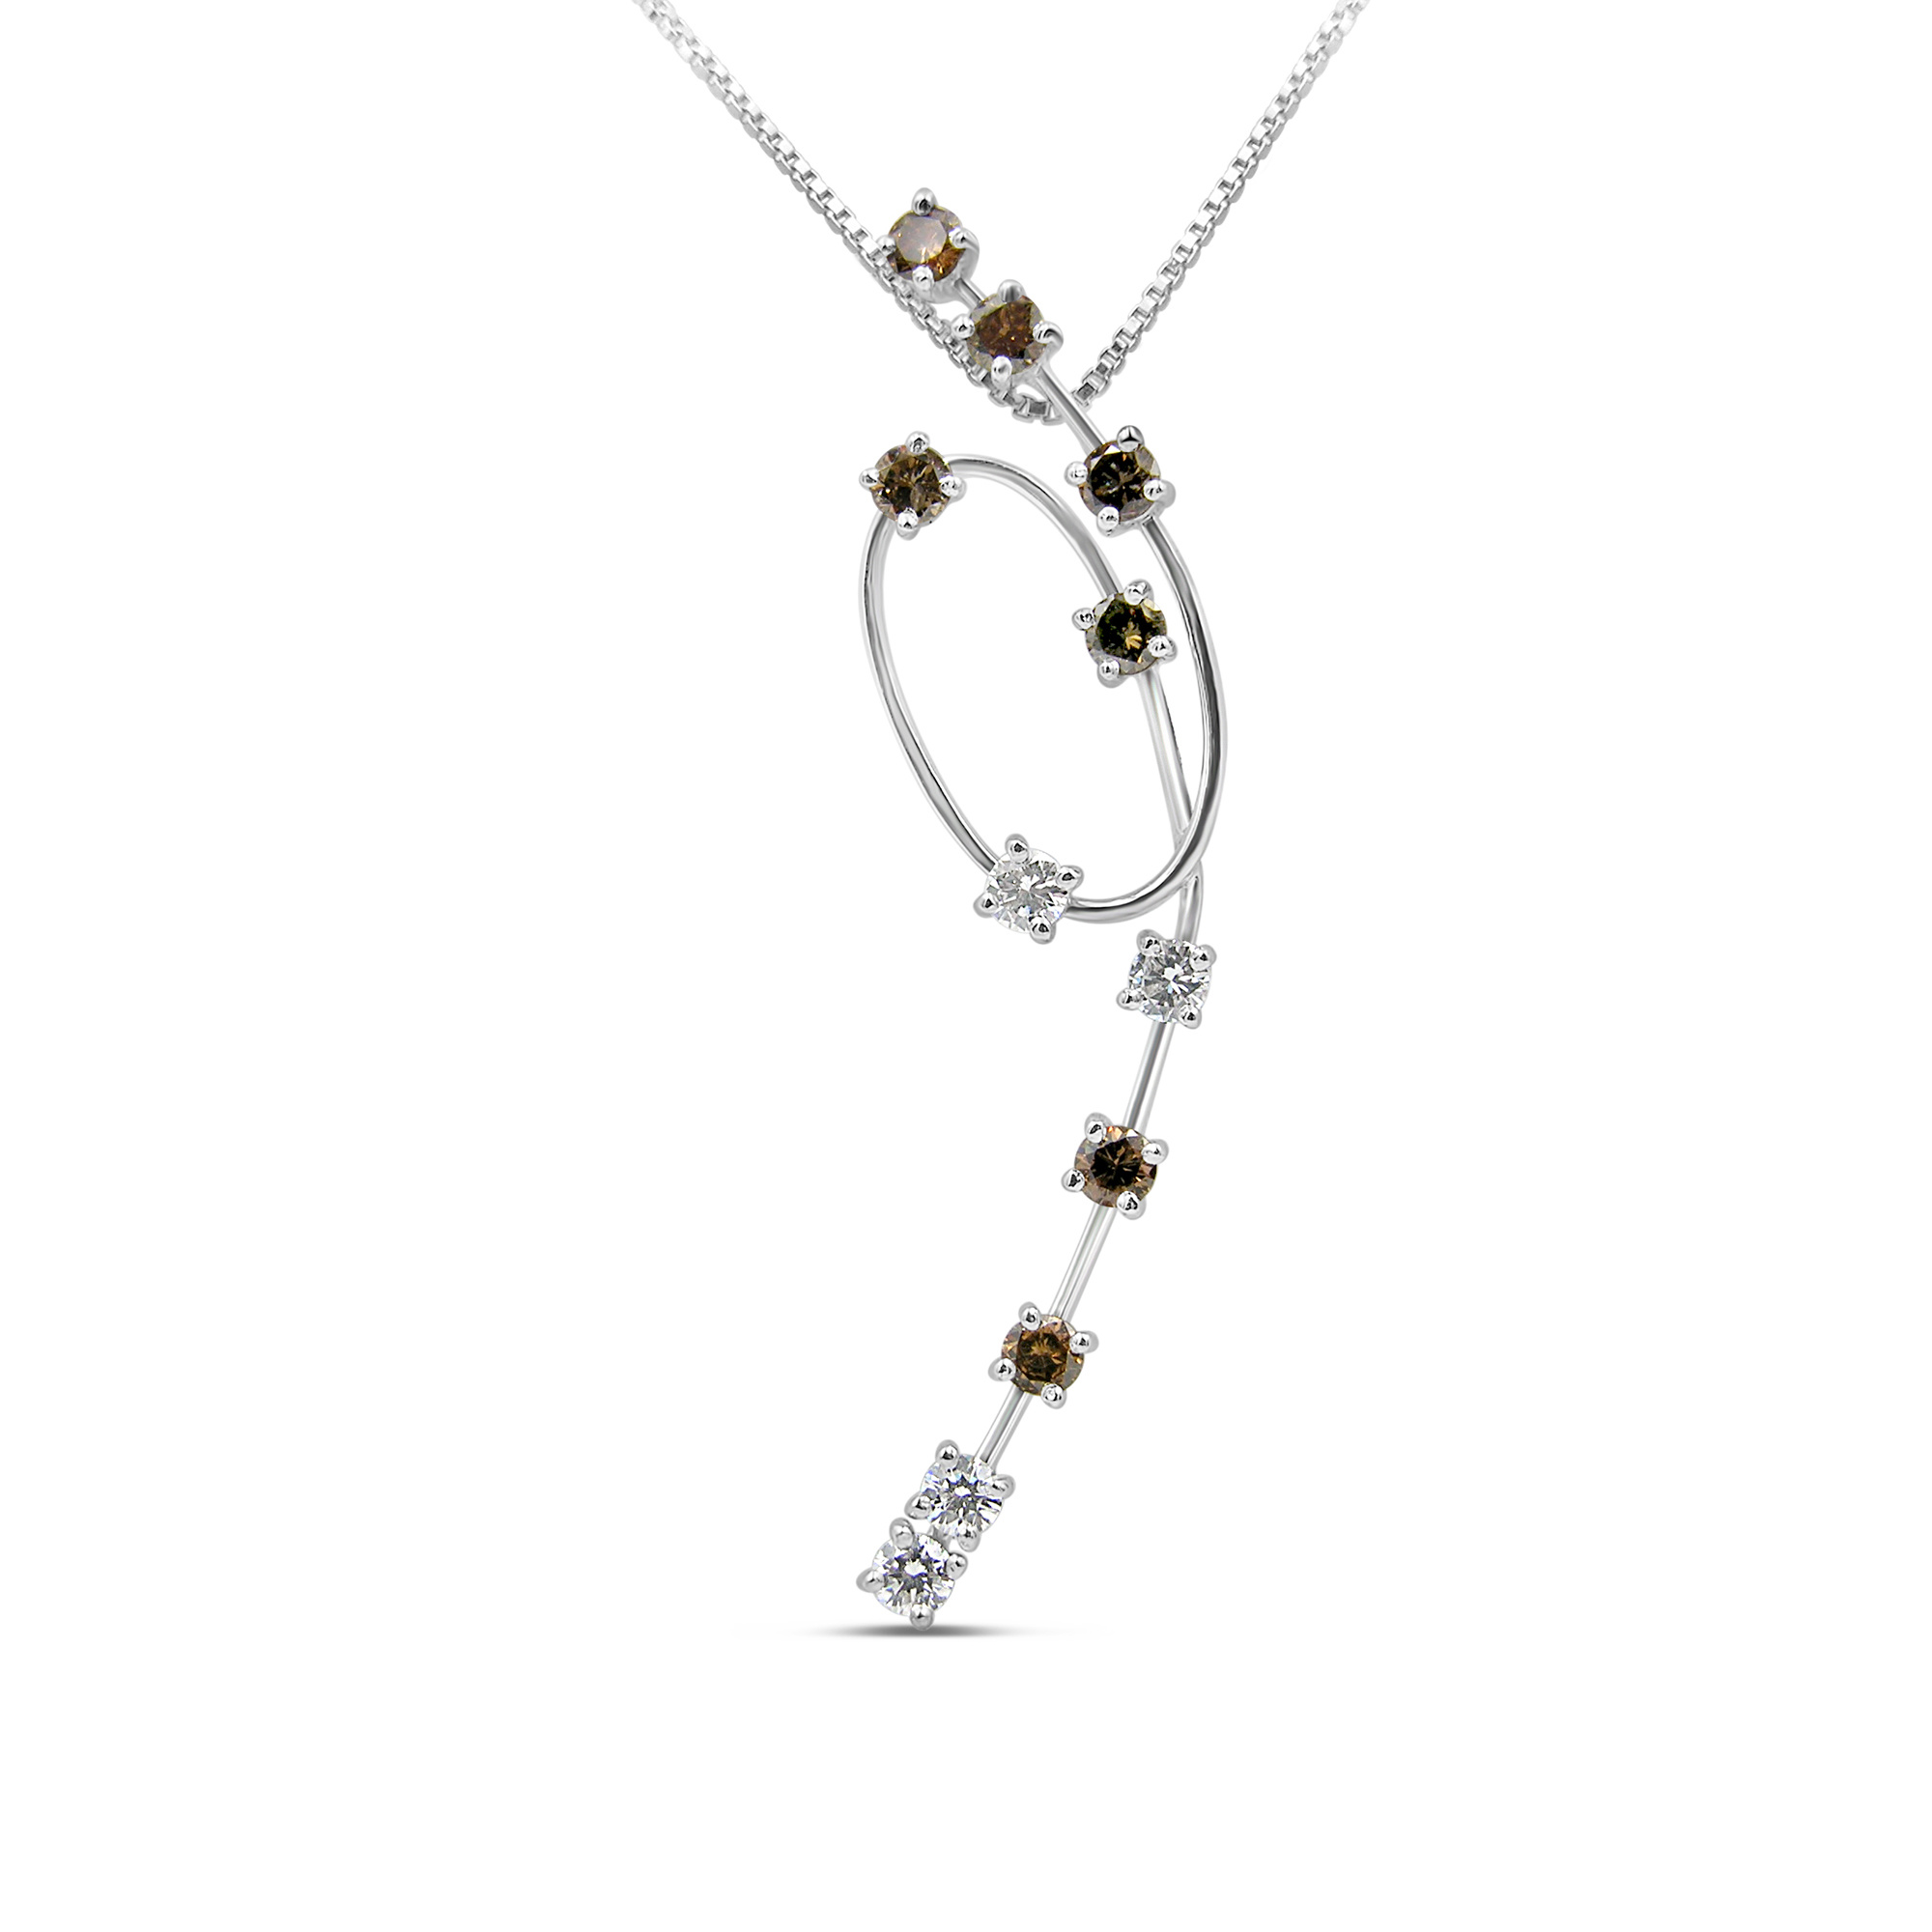 18kt white gold pendant with 0.56 ct diamonds